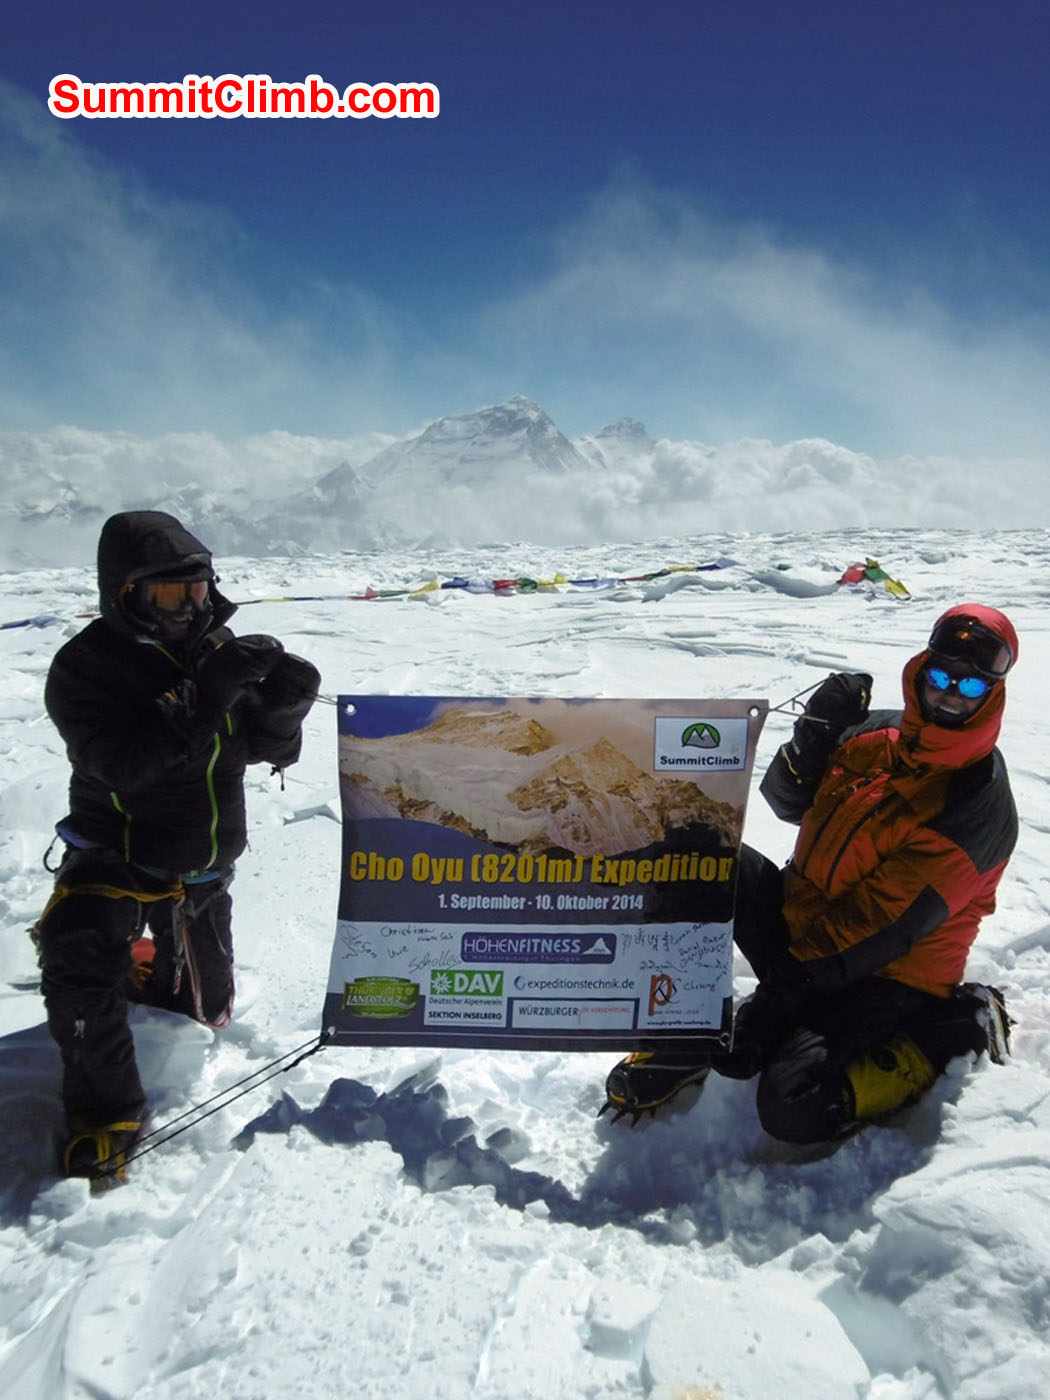 Thomas and Stefan on the summit of Cho Oyu. Uwe Werner Photo